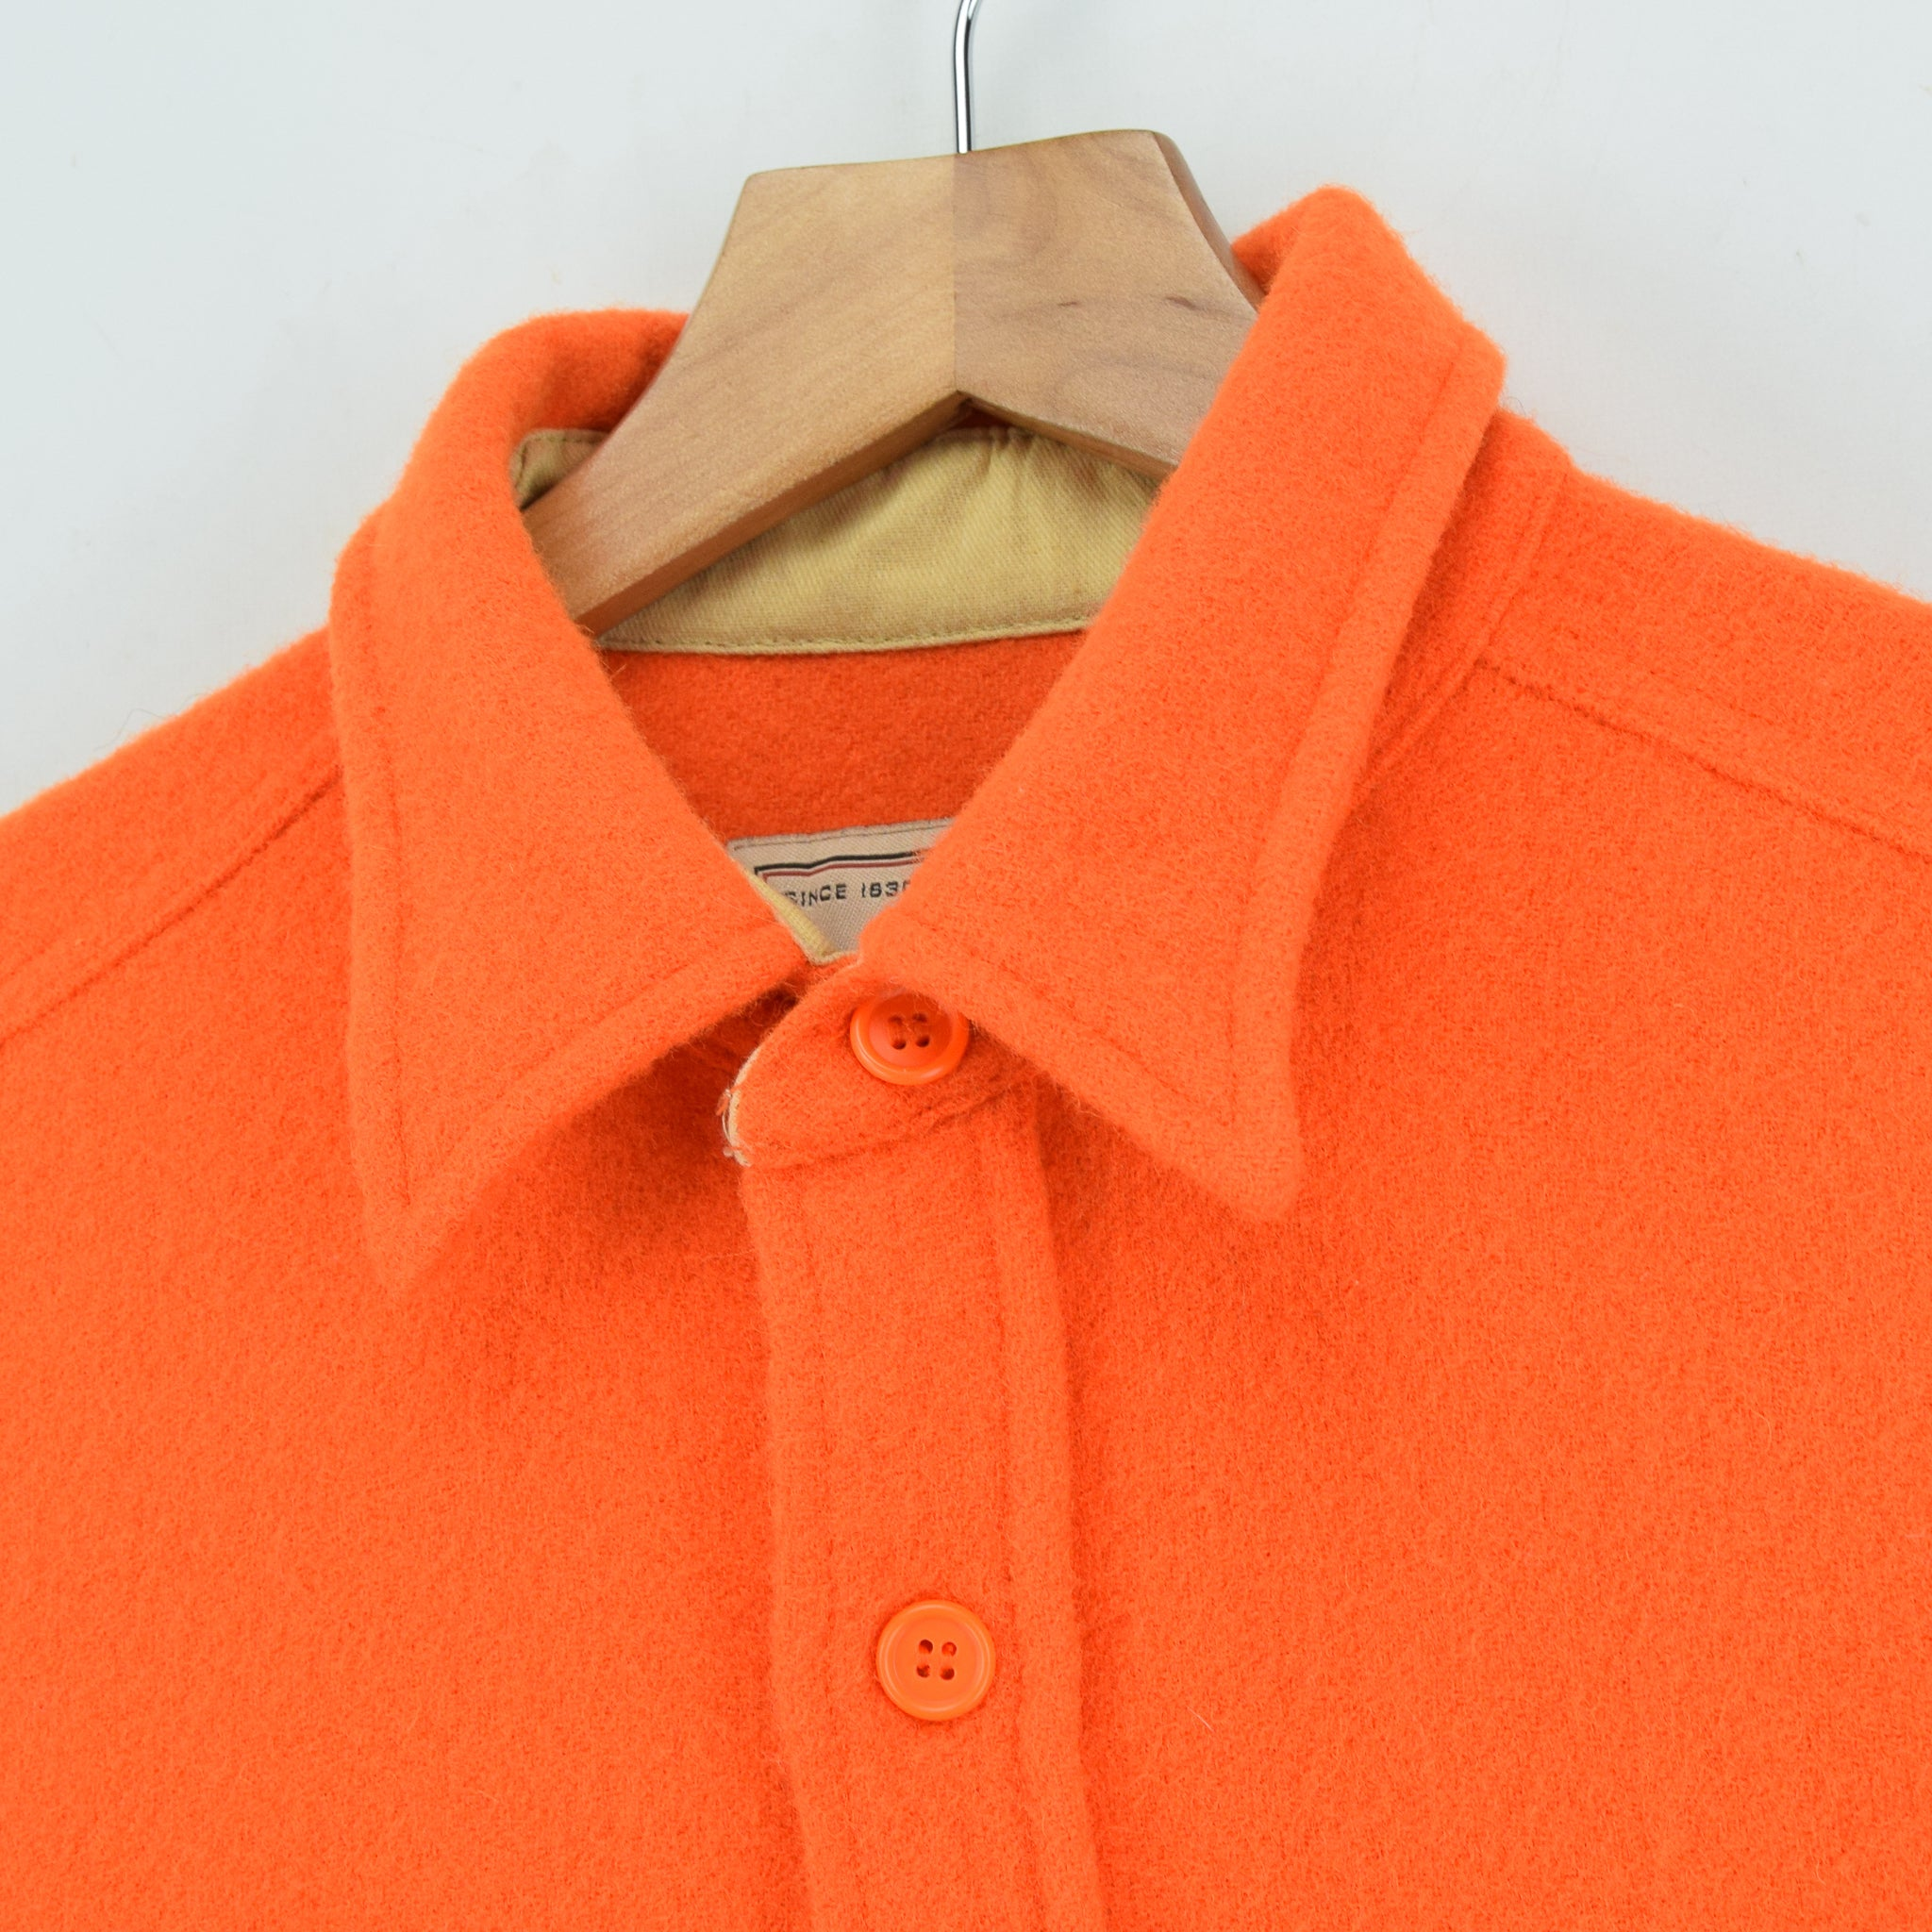 Vintage Woolrich Bright Orange Brushed Wool CPO Style Hunting Shirt Jacket M / L collar